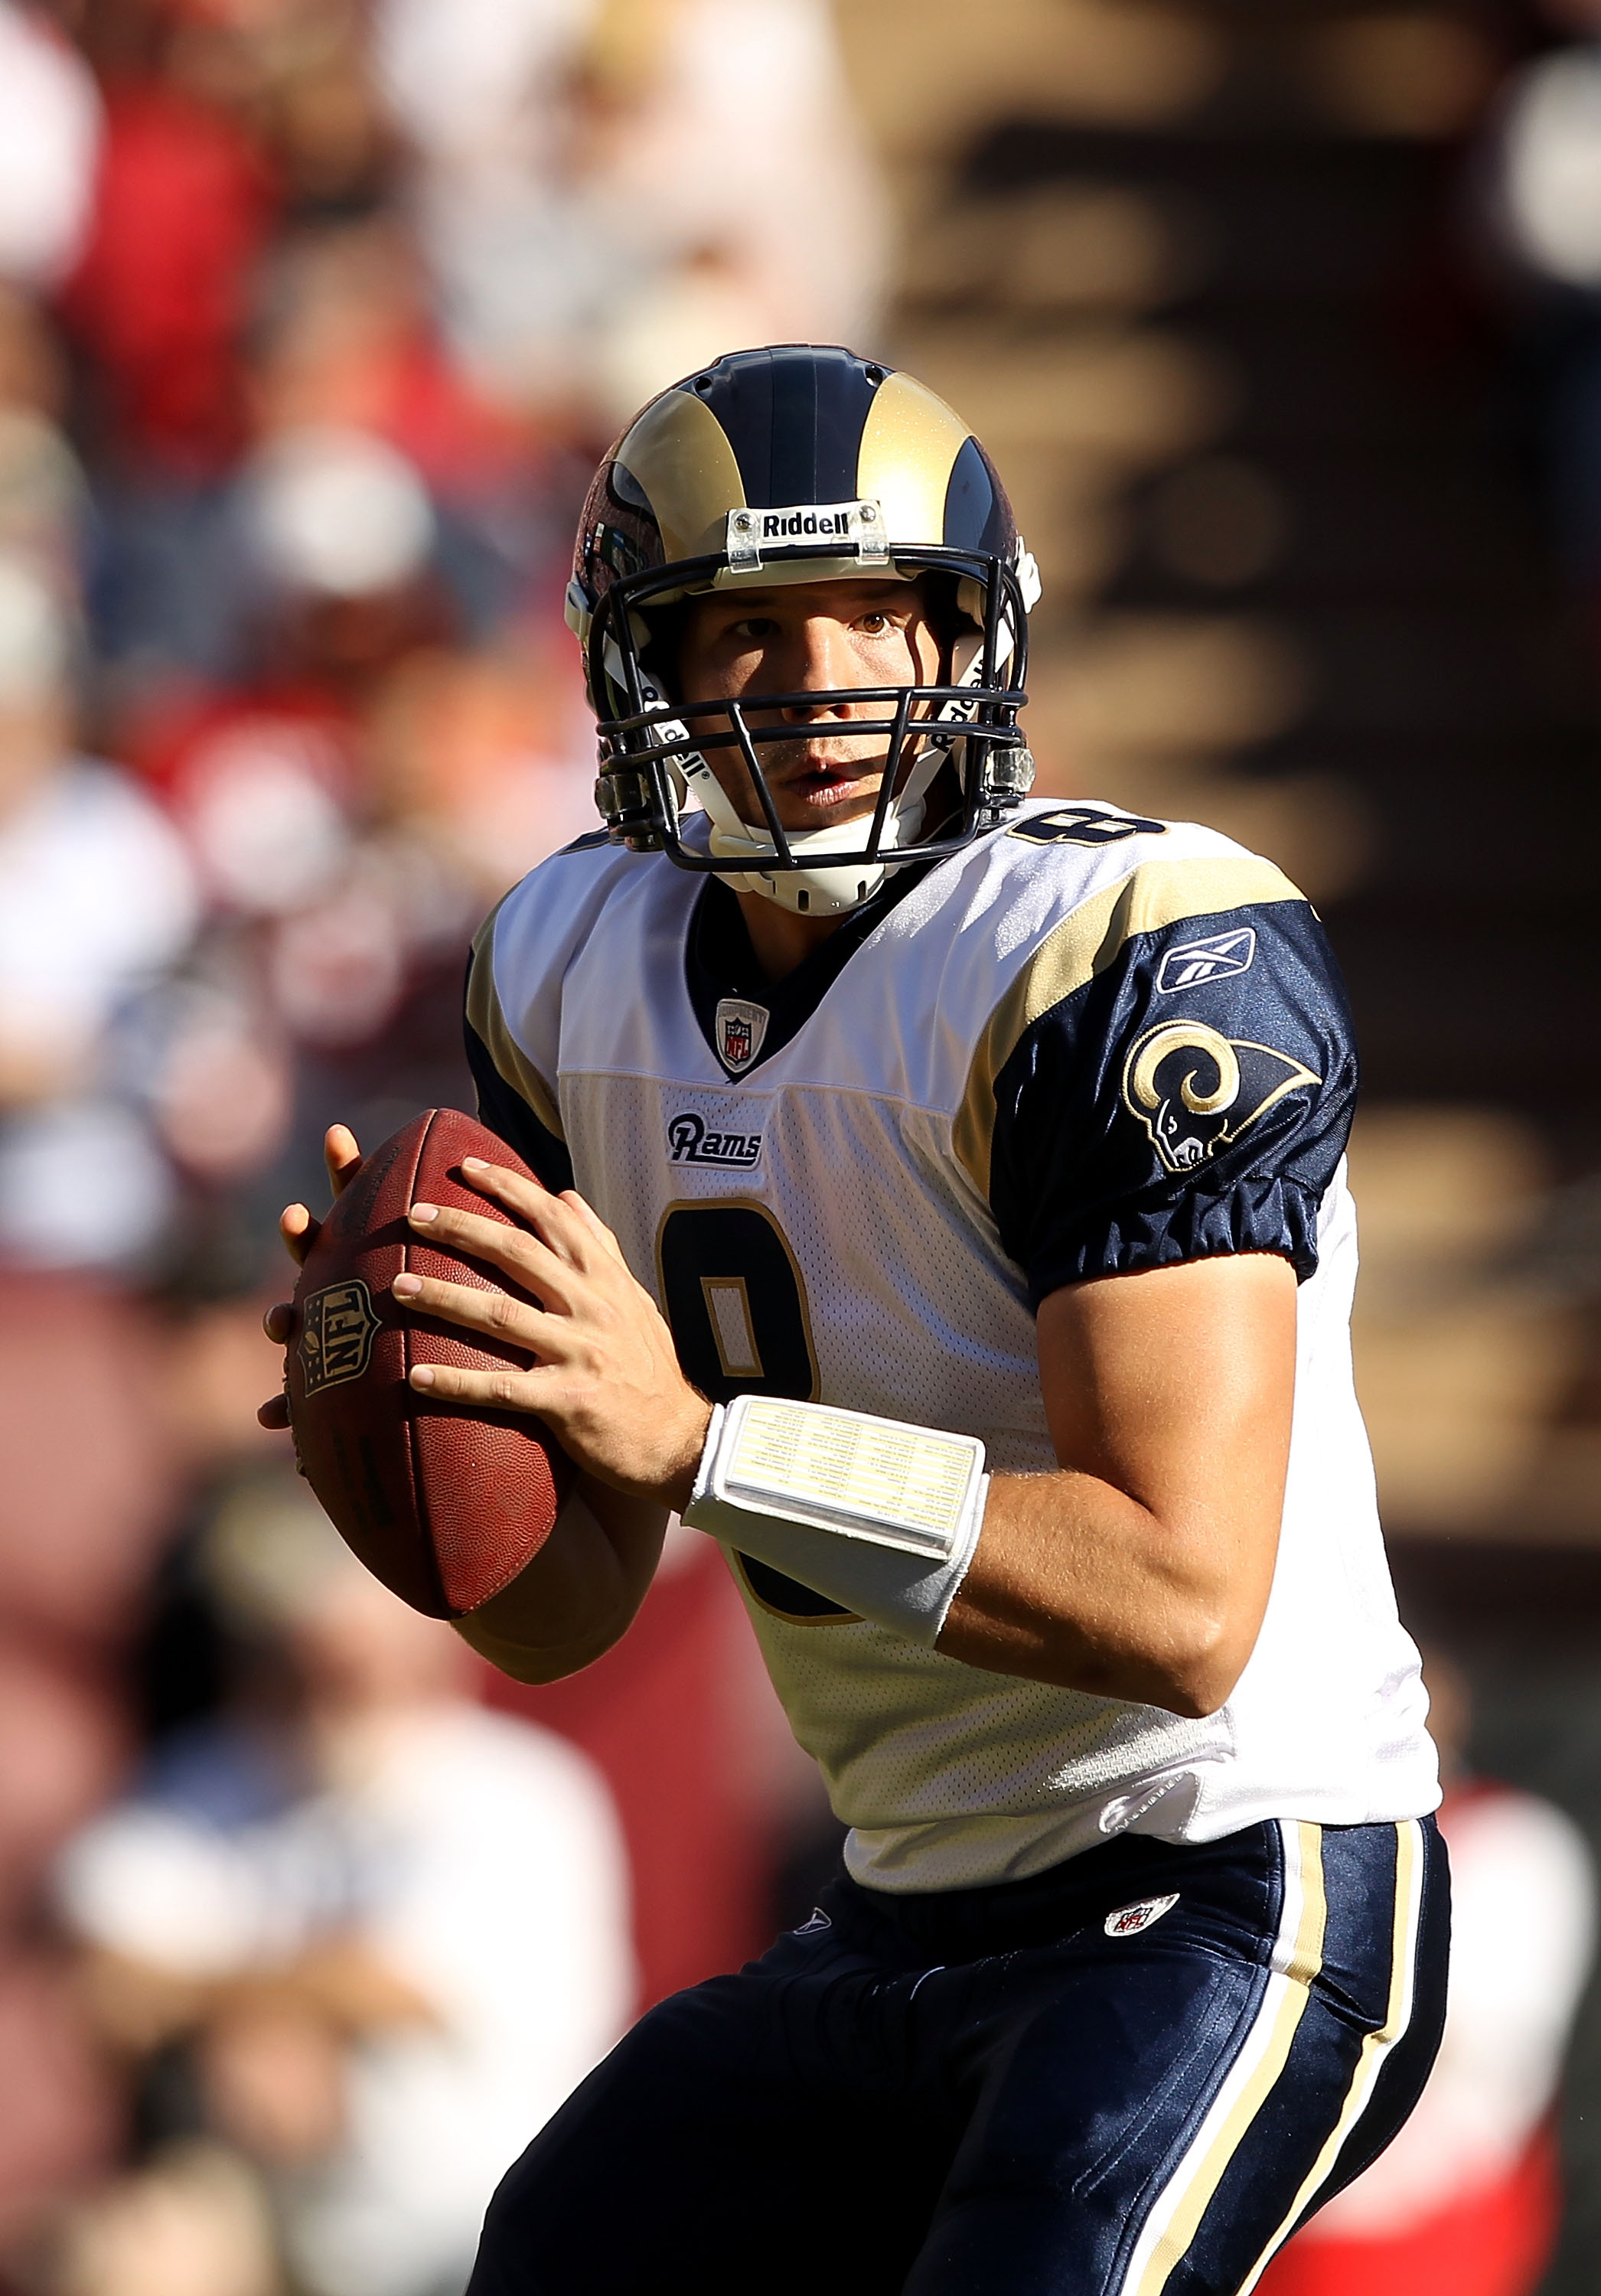 SAN FRANCISCO - NOVEMBER 14:  Sam Bradford #8 of the St. Louis Rams looks to pass the ball against the San Francisco 49ers at Candlestick Park on November 14, 2010 in San Francisco, California.  (Photo by Ezra Shaw/Getty Images)